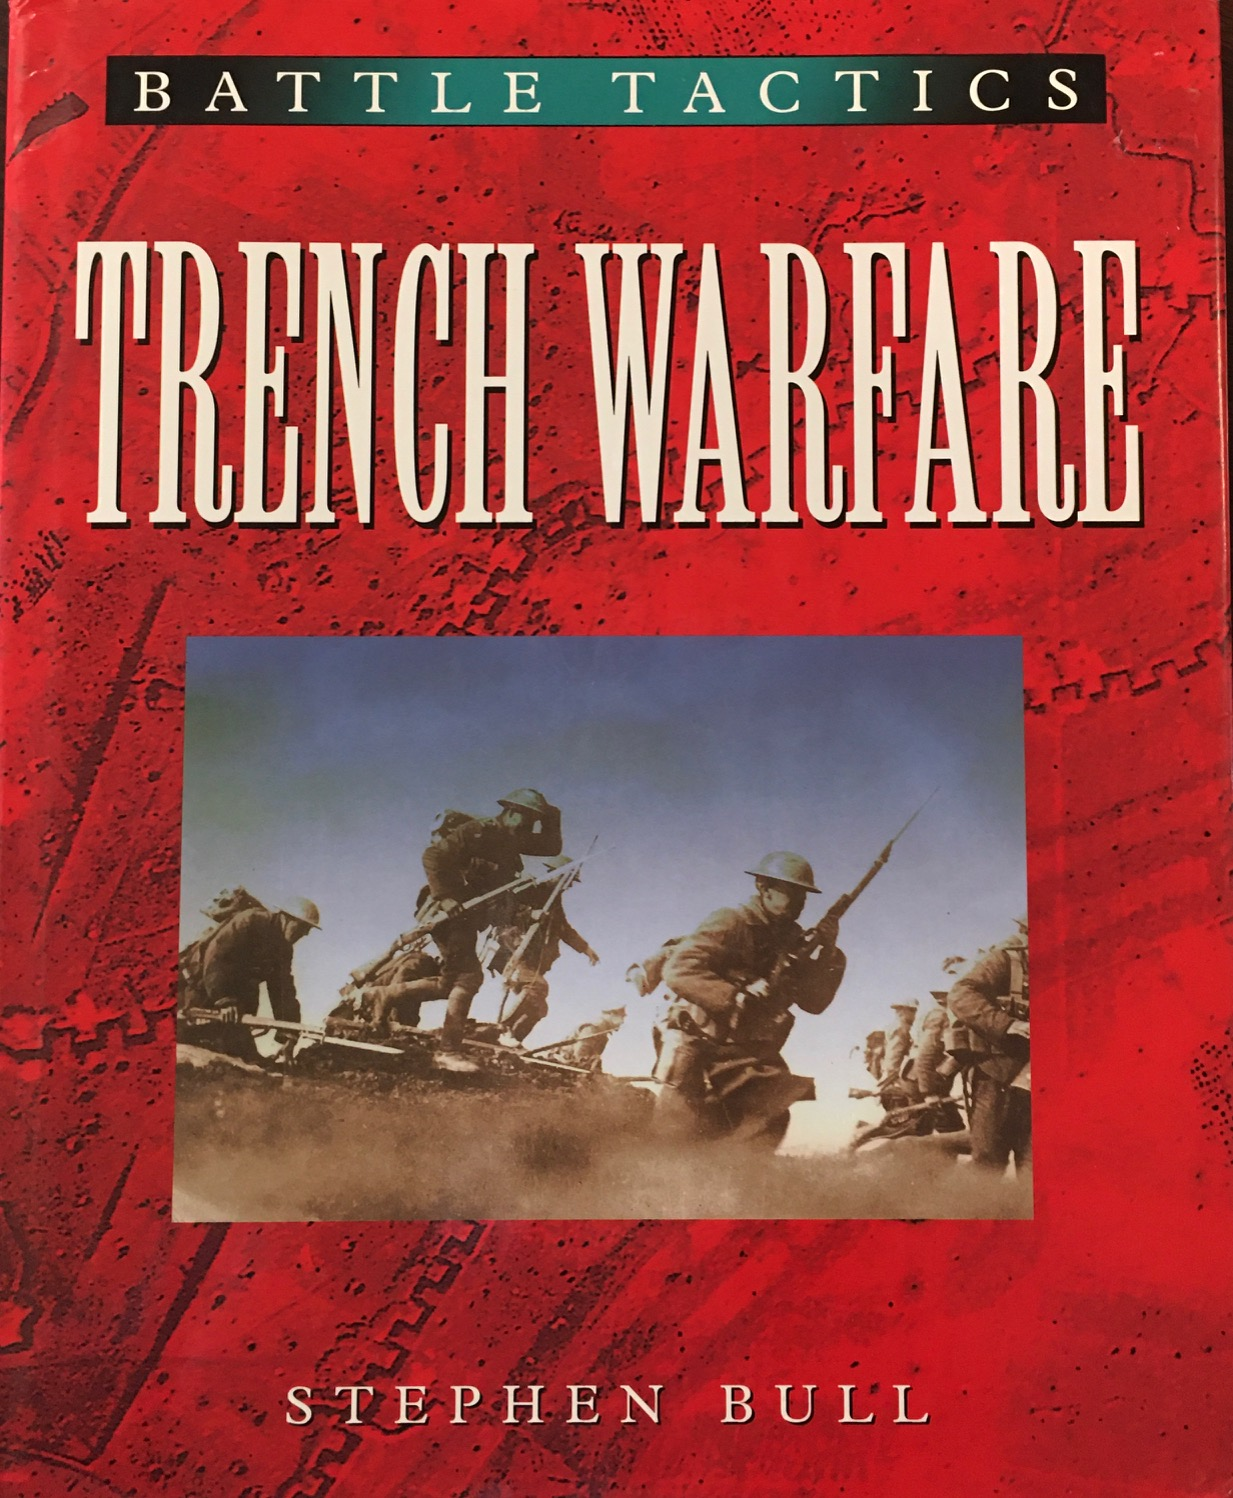 Image for Trench Warfare (Battle Tactics)